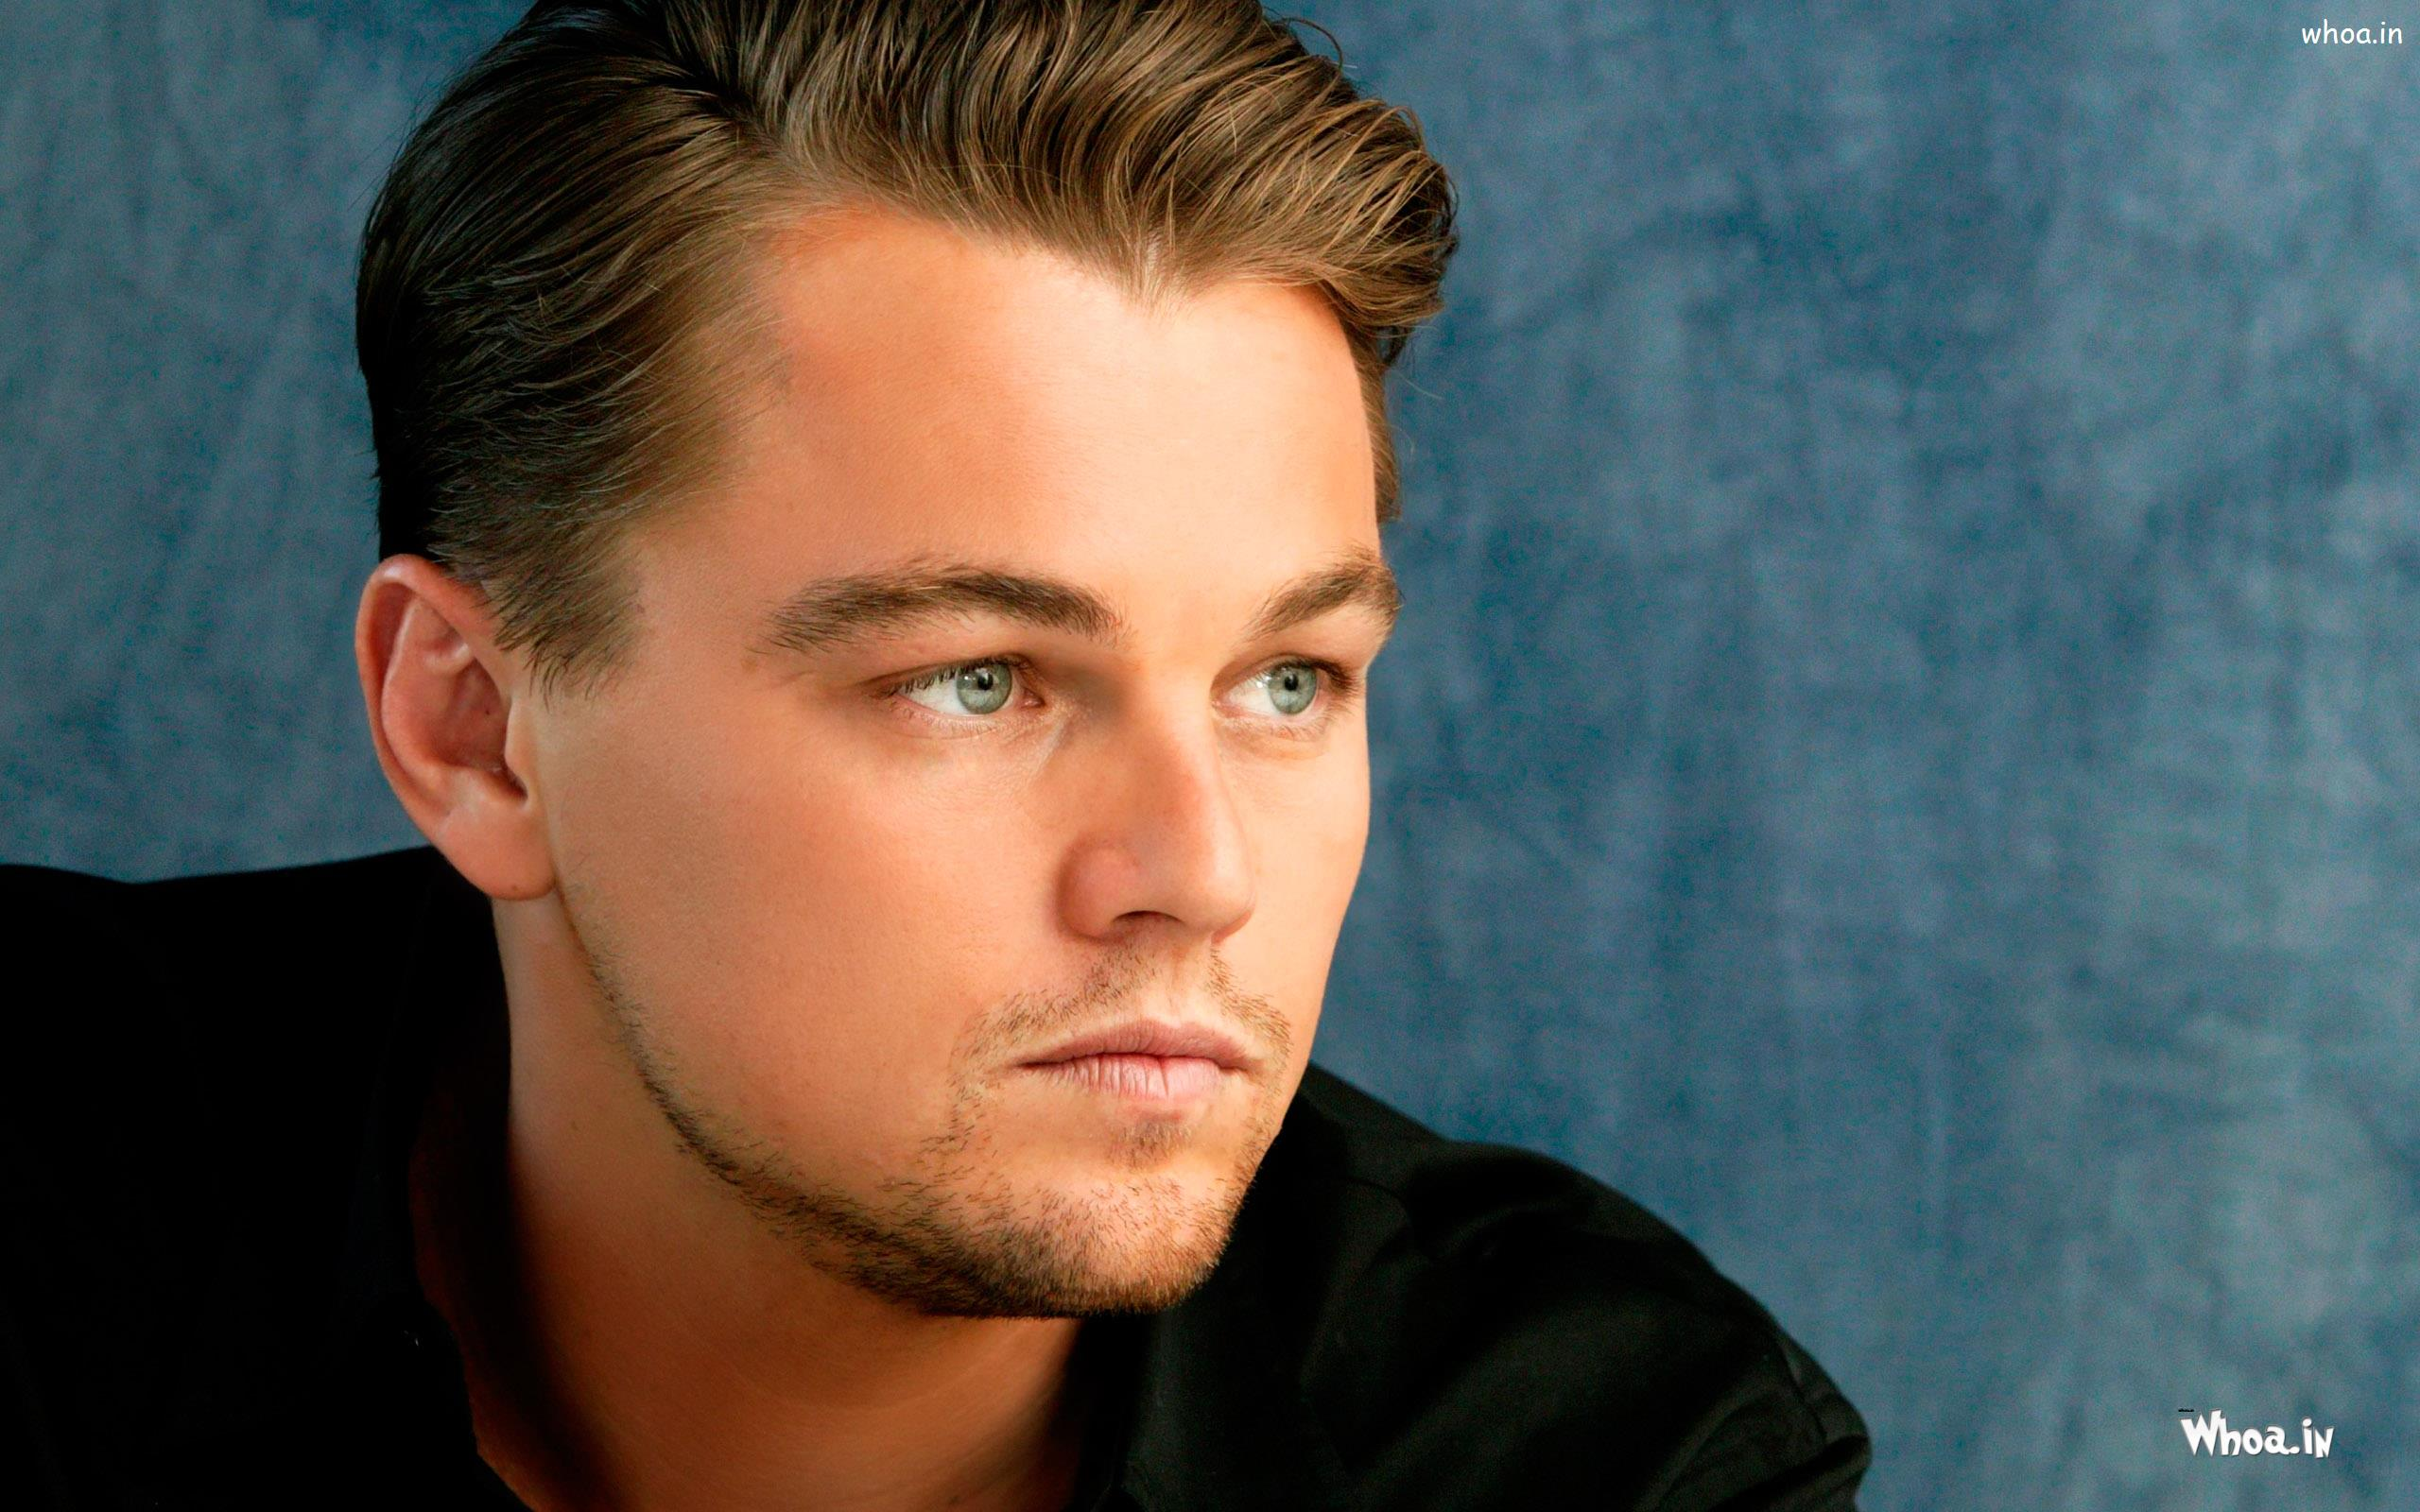 leonardo dicaprio in black suit and stylish hair style wallpaper